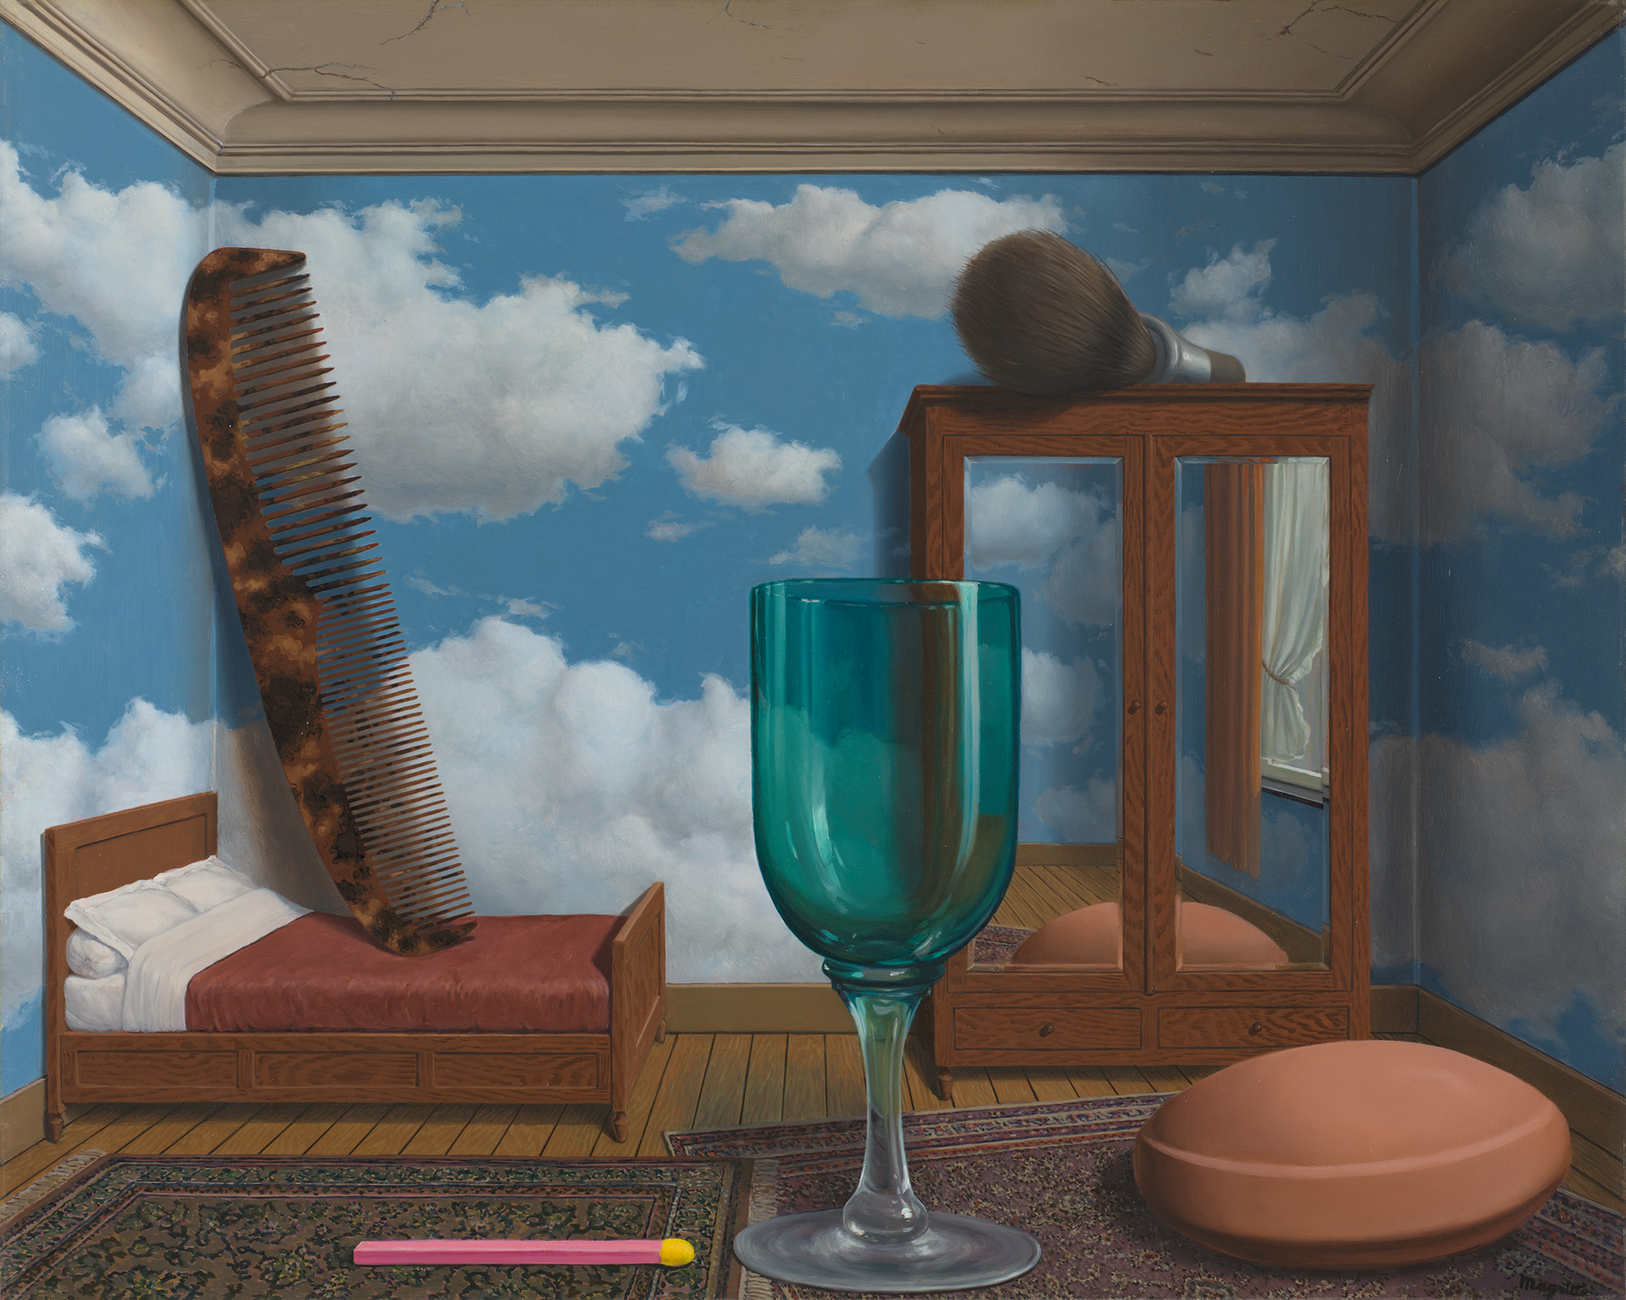 A large green glass wineglass, a match, and pill on two overlapping persian rugs in a room with walls painted like a cloudy sky and also containing a bed with a giant comb and a mirrored armoire with a large shaving brush on top